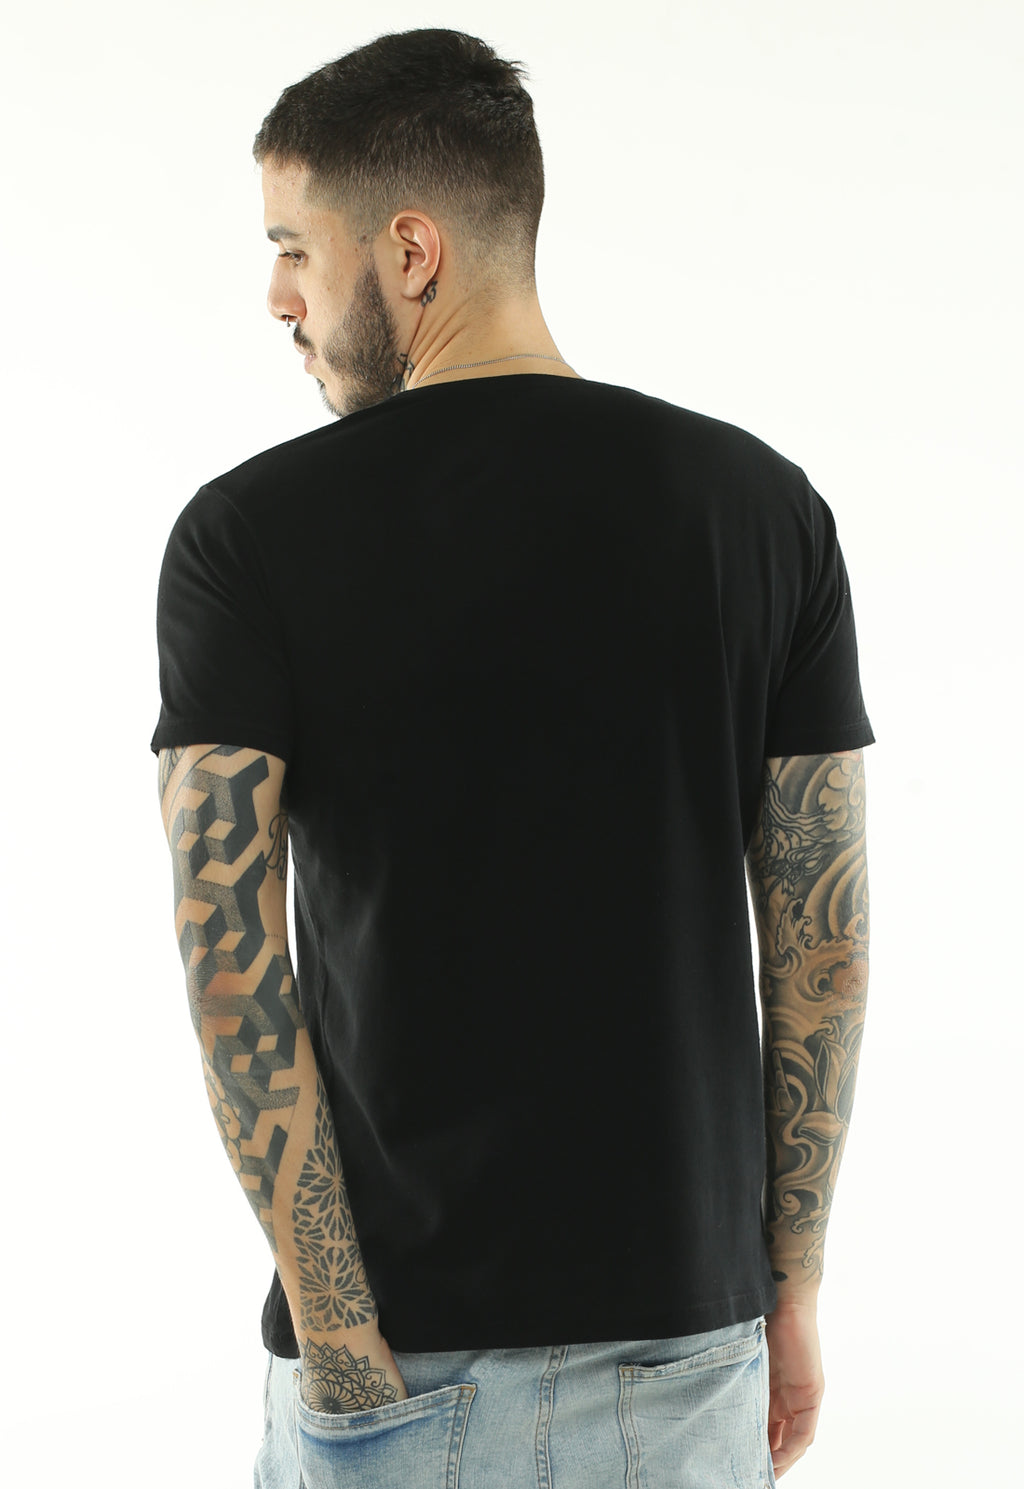 CAMISETA MASCULINA BOSSA BRASIL ESTAMPADA - CONNECTING PEOPLE